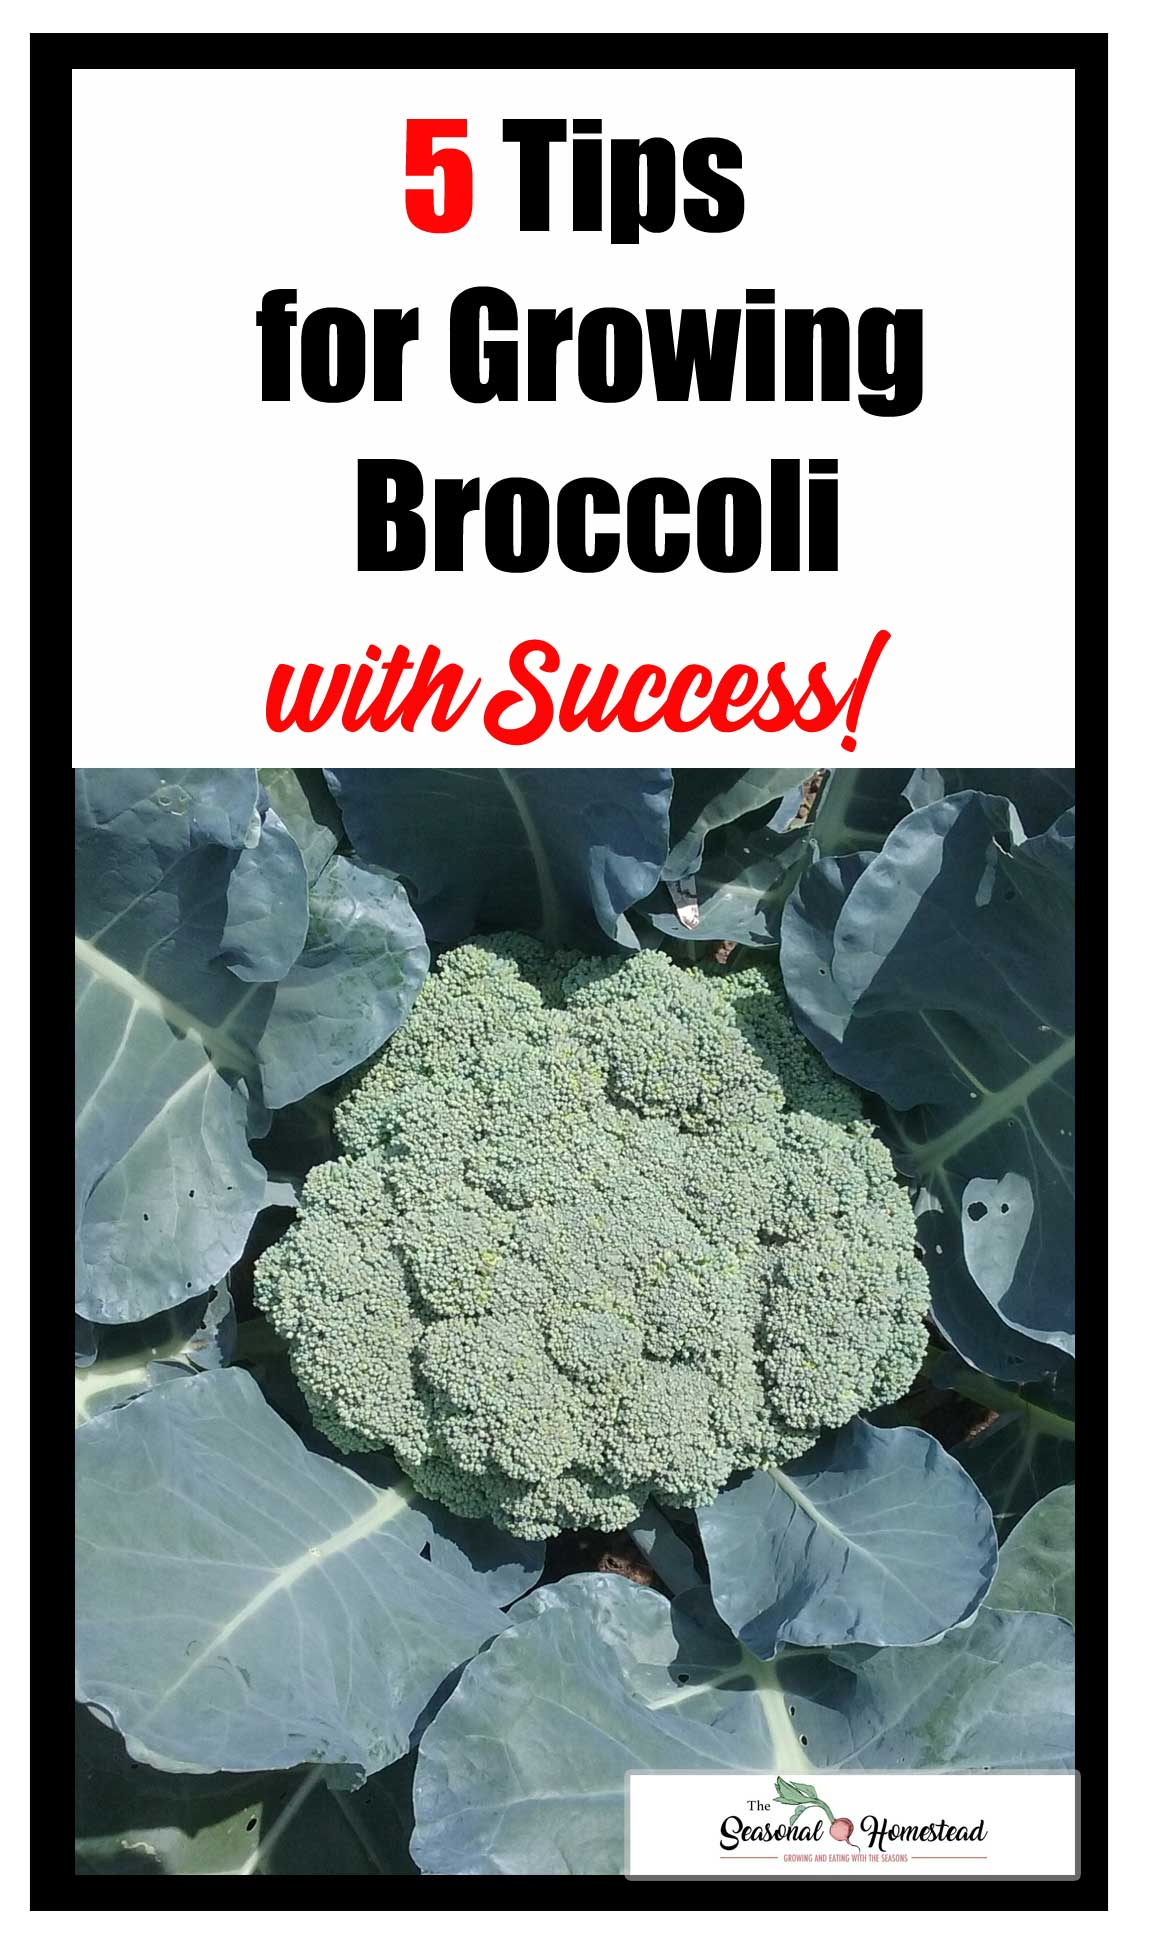 5-Tips-for-Growing-Broccoli-with-Success.jpg